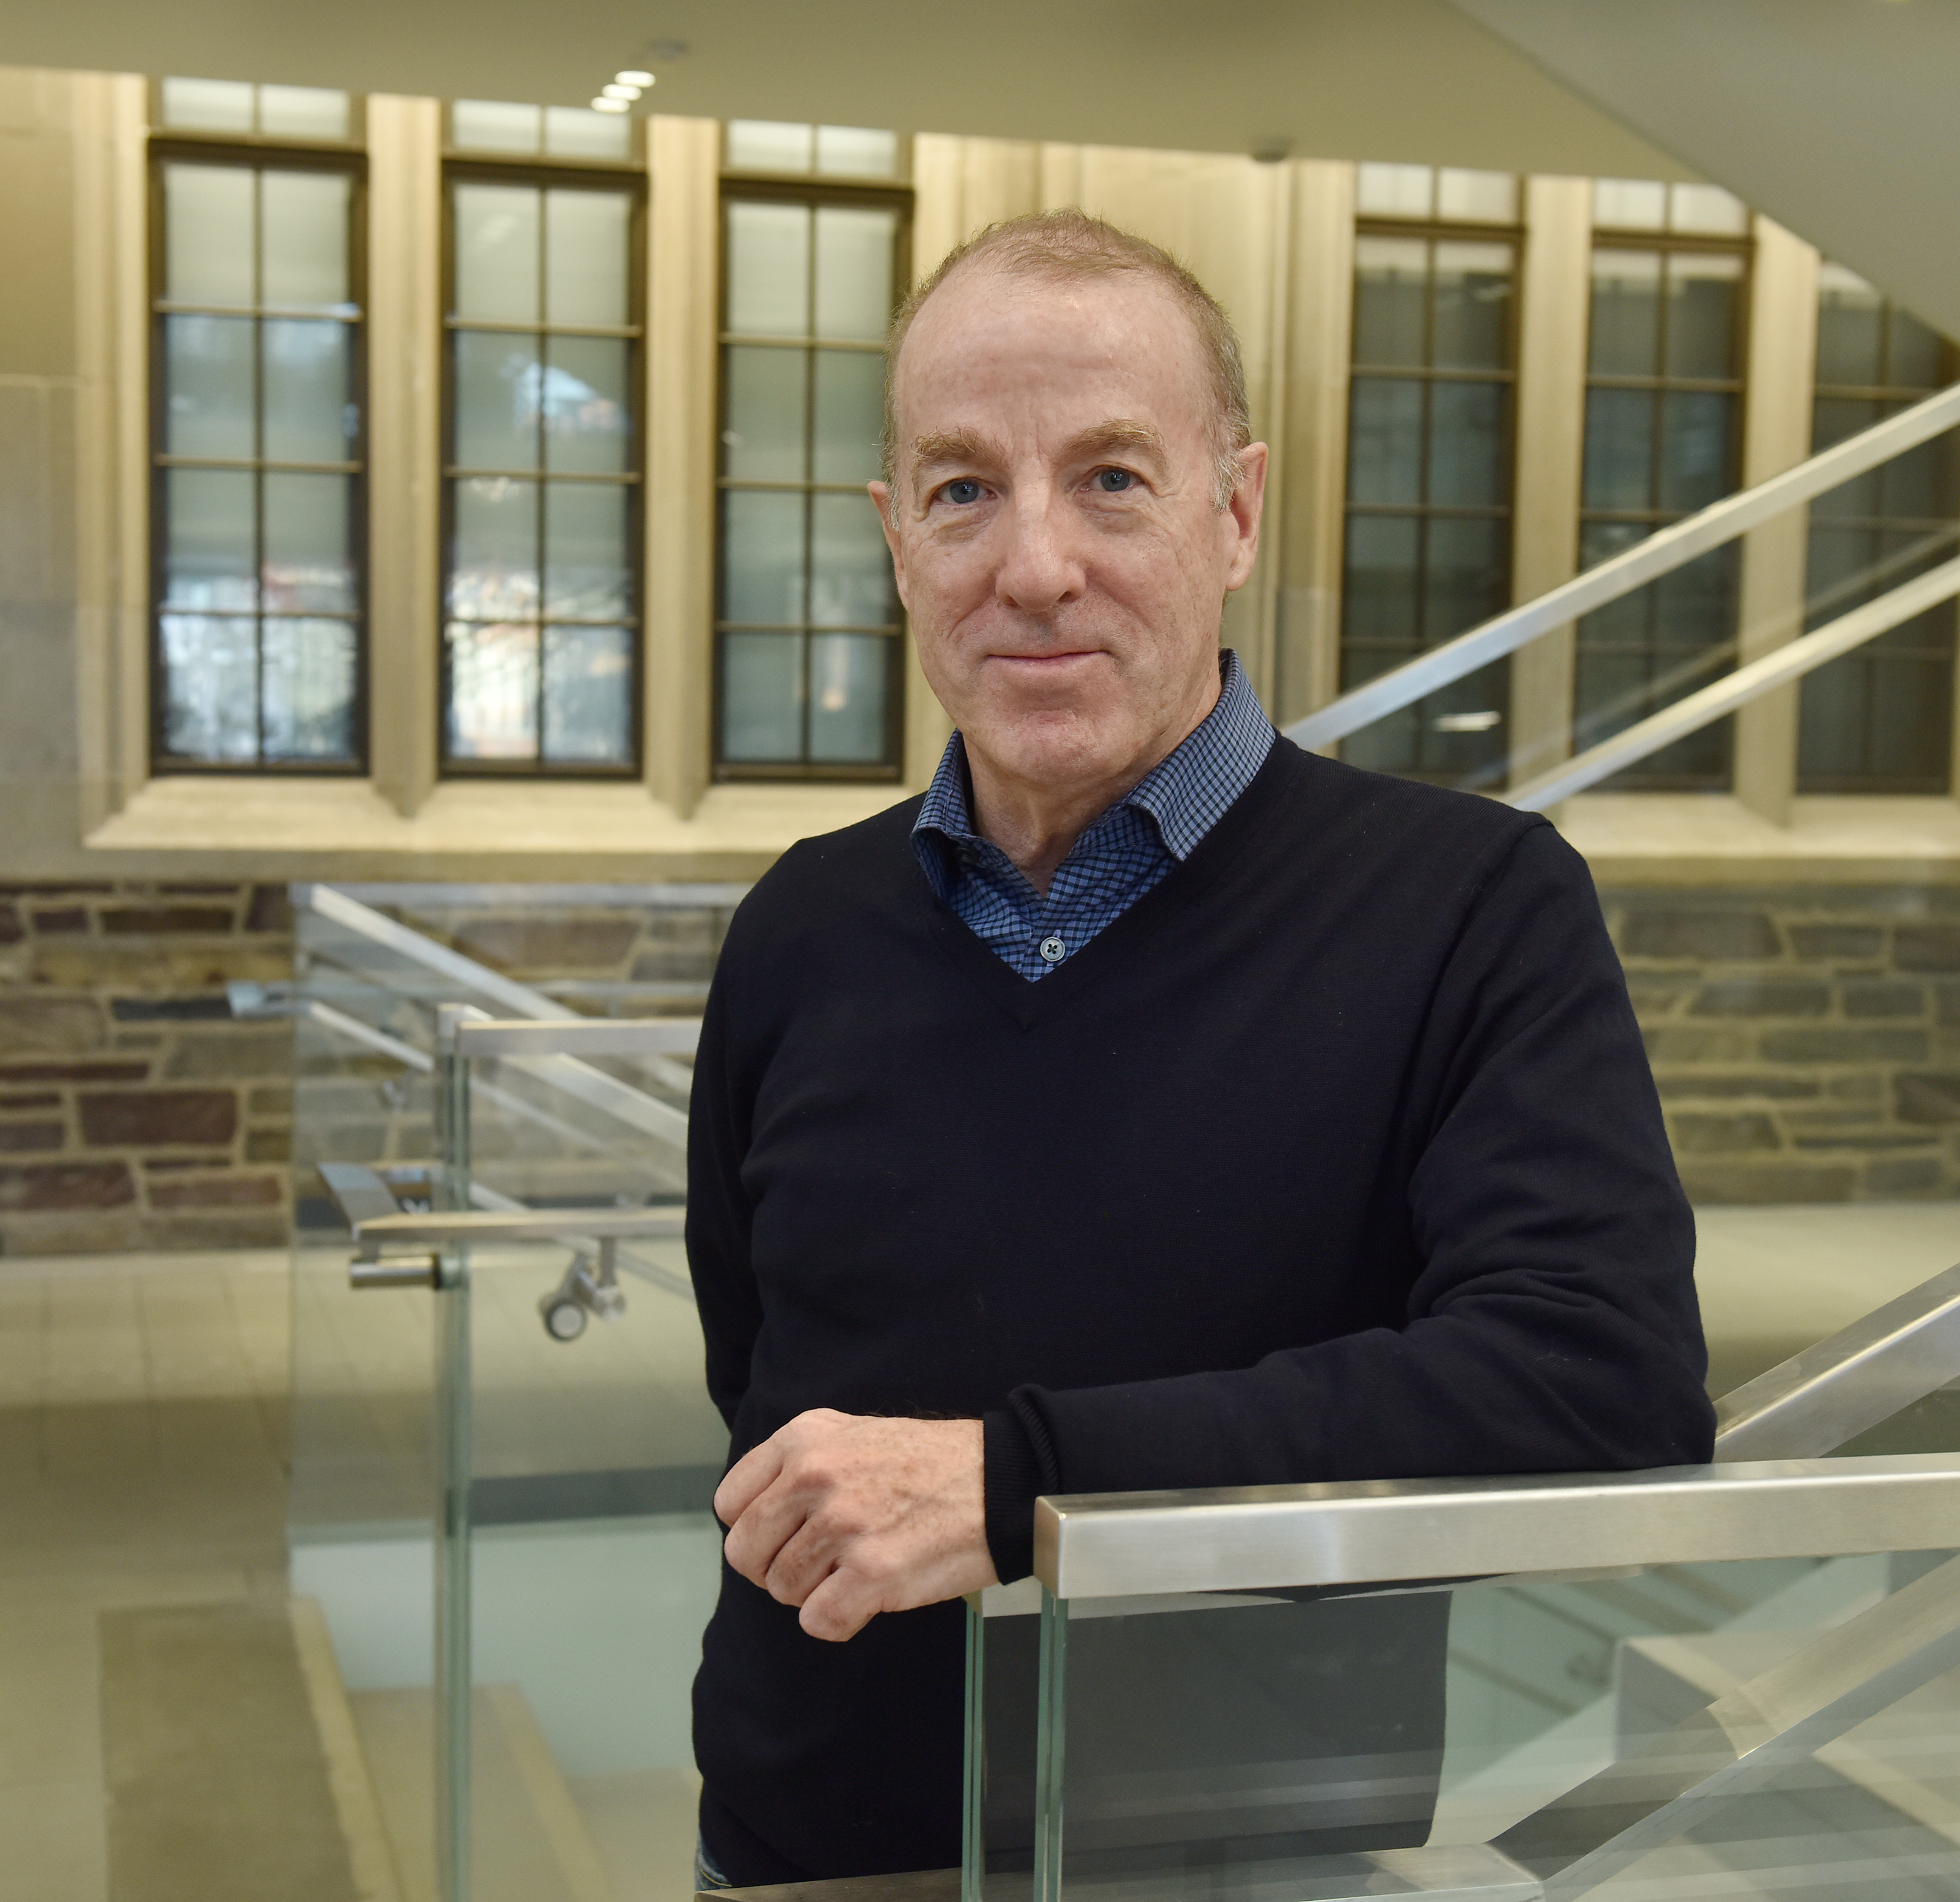 Michael Moore has been named as Princeton University's Translator in Residence for the spring 2018 semester by the Program in Translation and Intercultural Communication (PTIC).